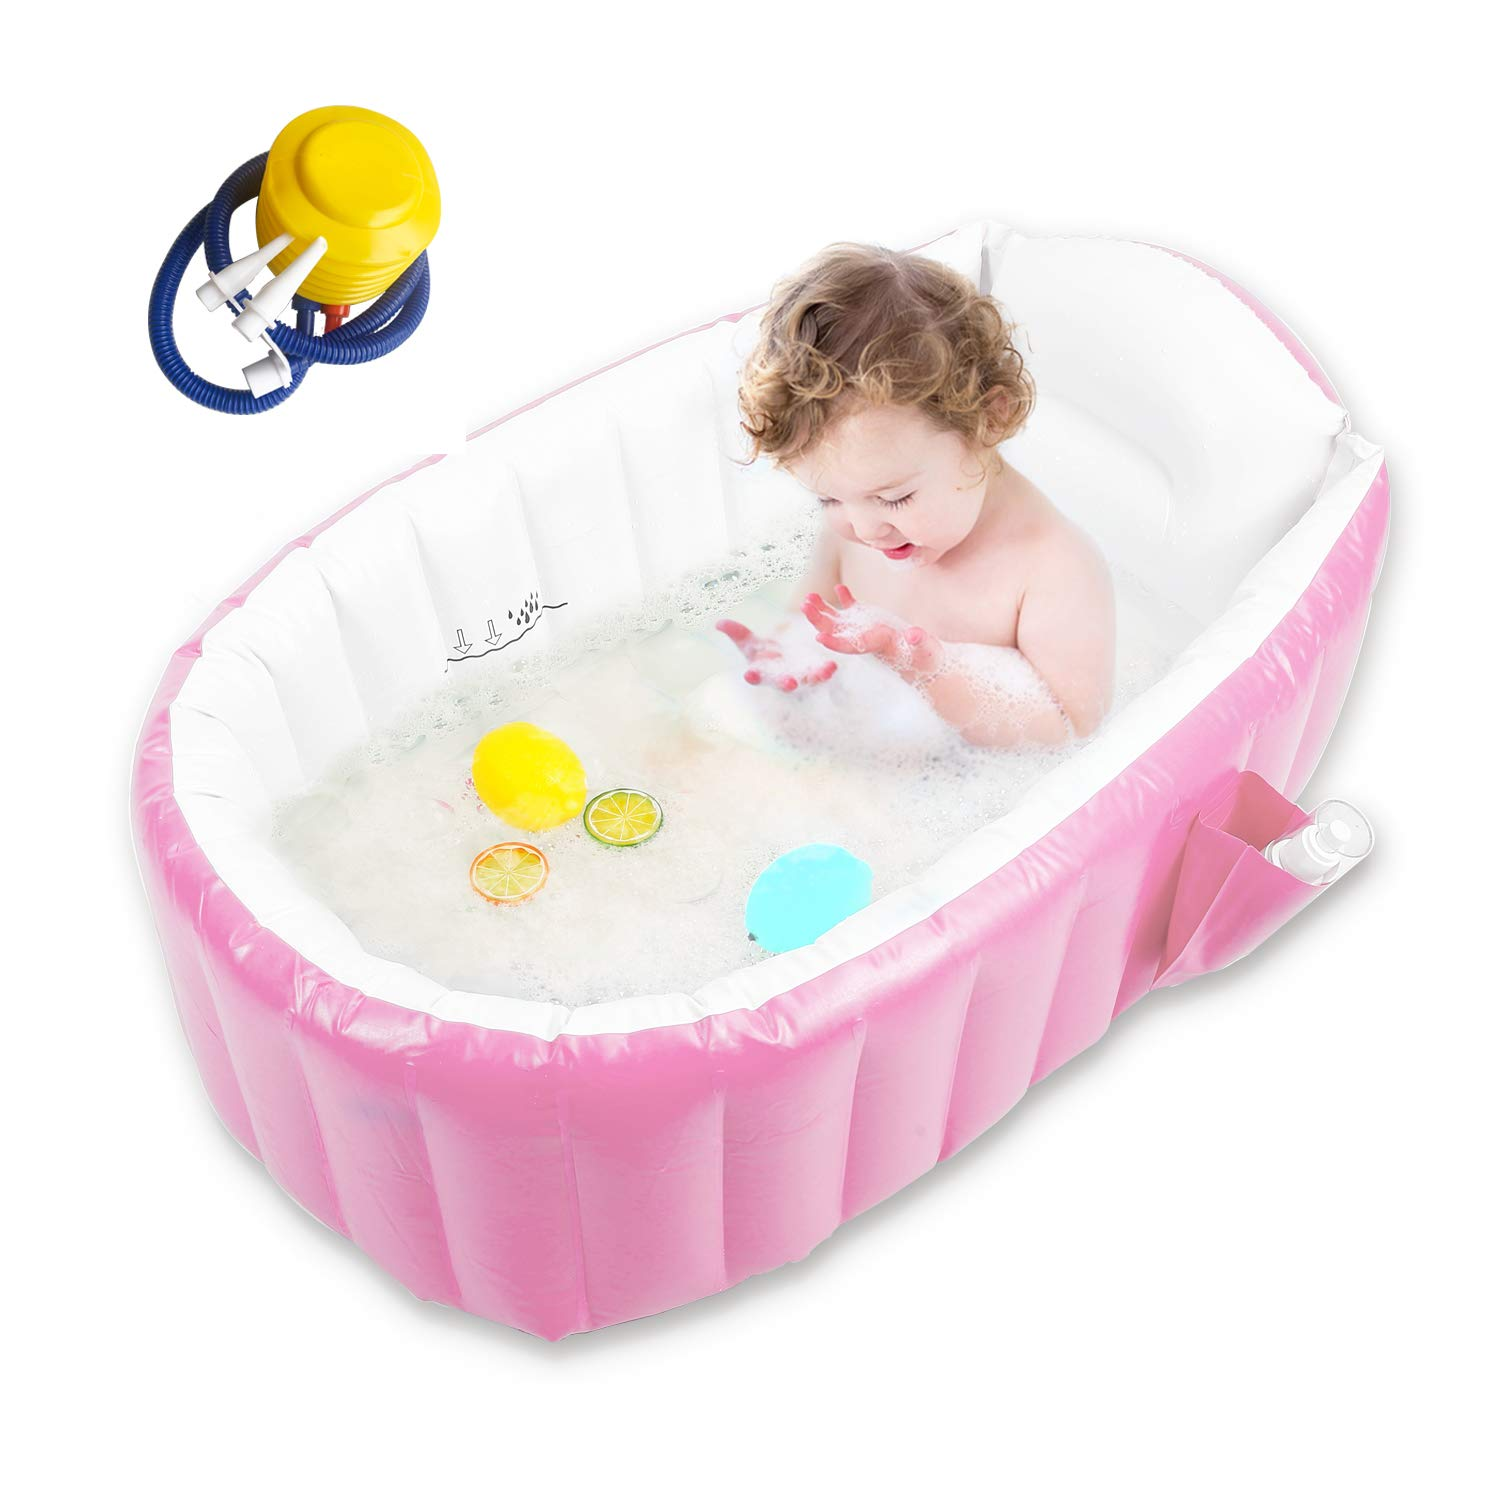 Baby Inflatable Bathtub, Goodking Portable Infant Toddler Bathing Tub Non Slip Travel Bathtub Mini Air Swimming Pool Kids Thick Foldable Shower Basin with Air Pump, Pink